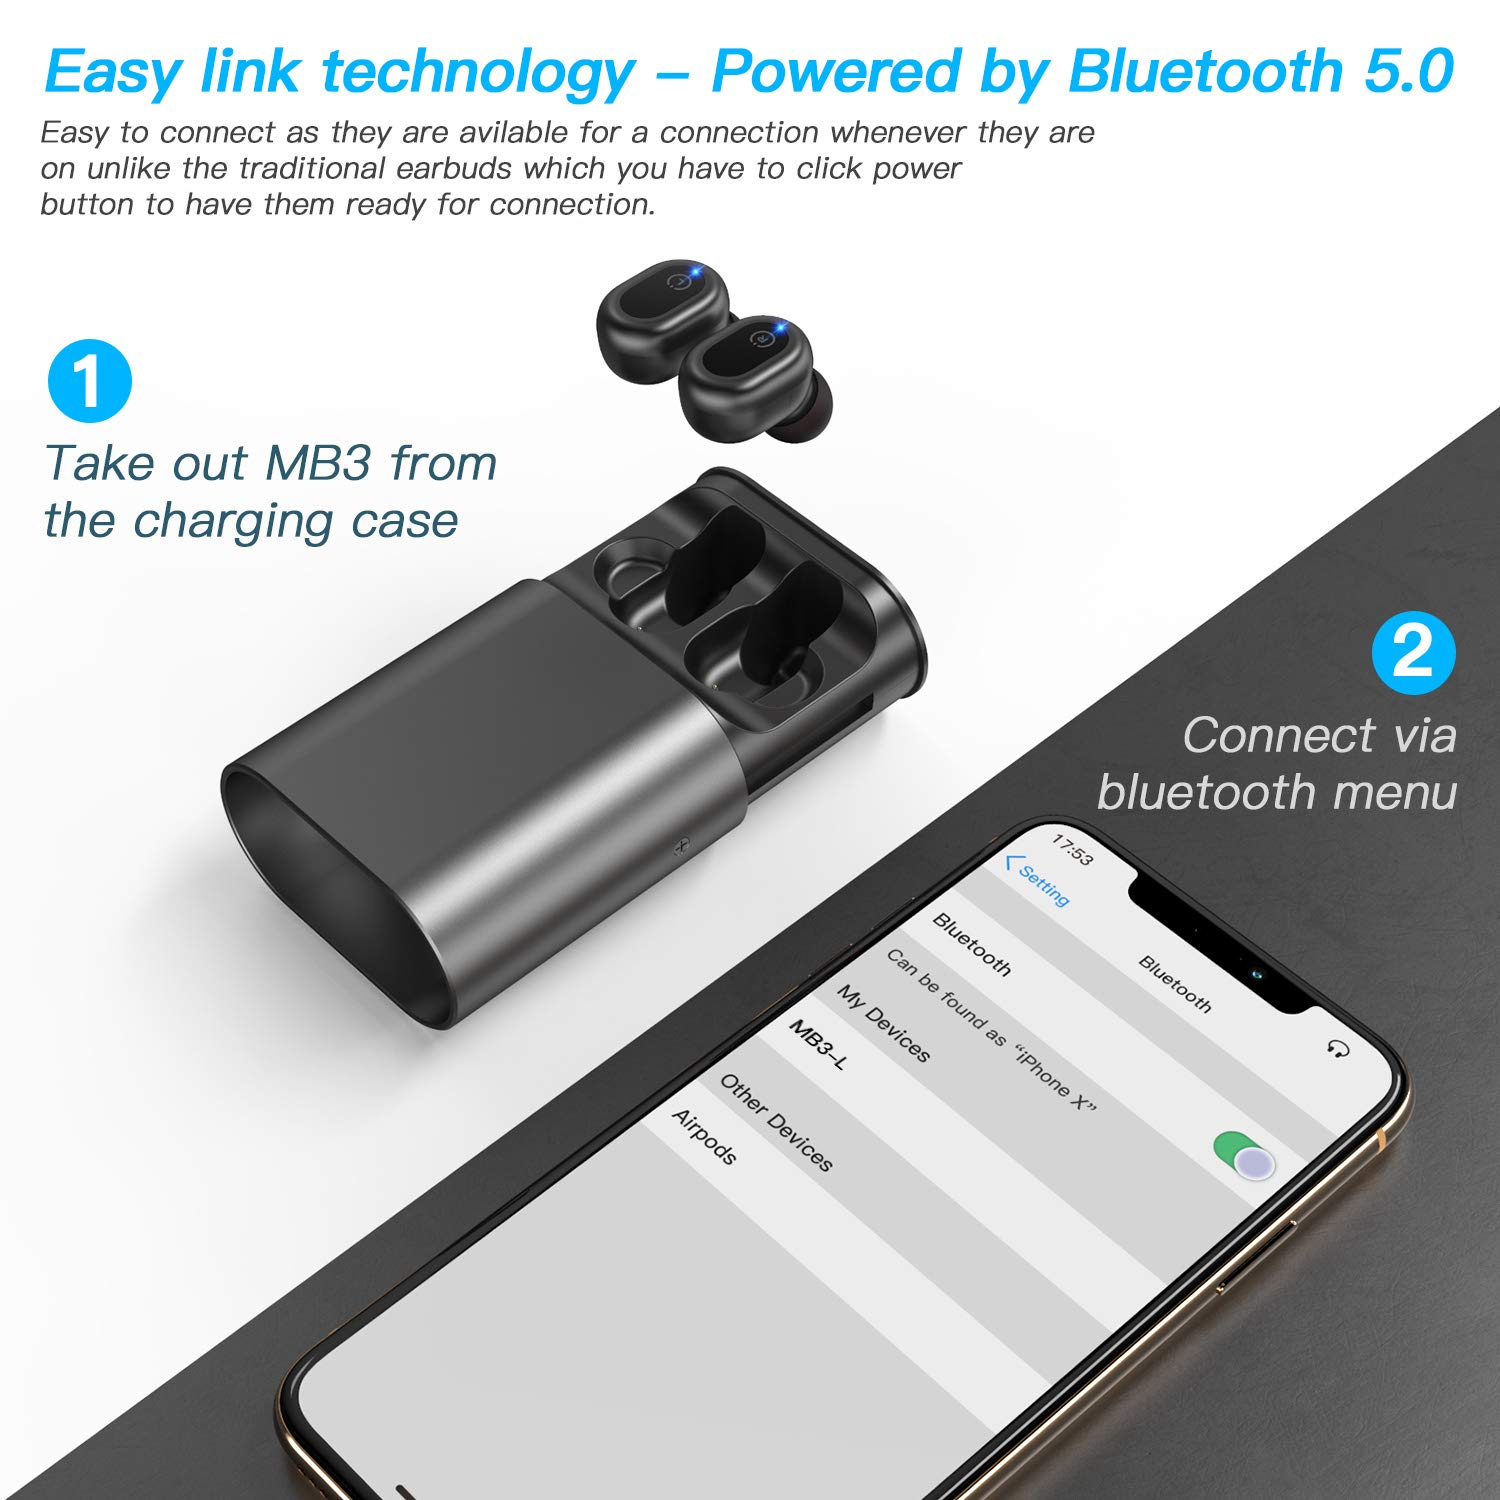 XIKER True Wireless Stereo Bluetooth Earbuds, Latest Bluetooth 5.0 Wireless Earbuds IPX8 Waterproof in-Ear with Wireless Charging Case, 16H Playtime 3D Stereo Sound with Deep Bass Wireless Headphones